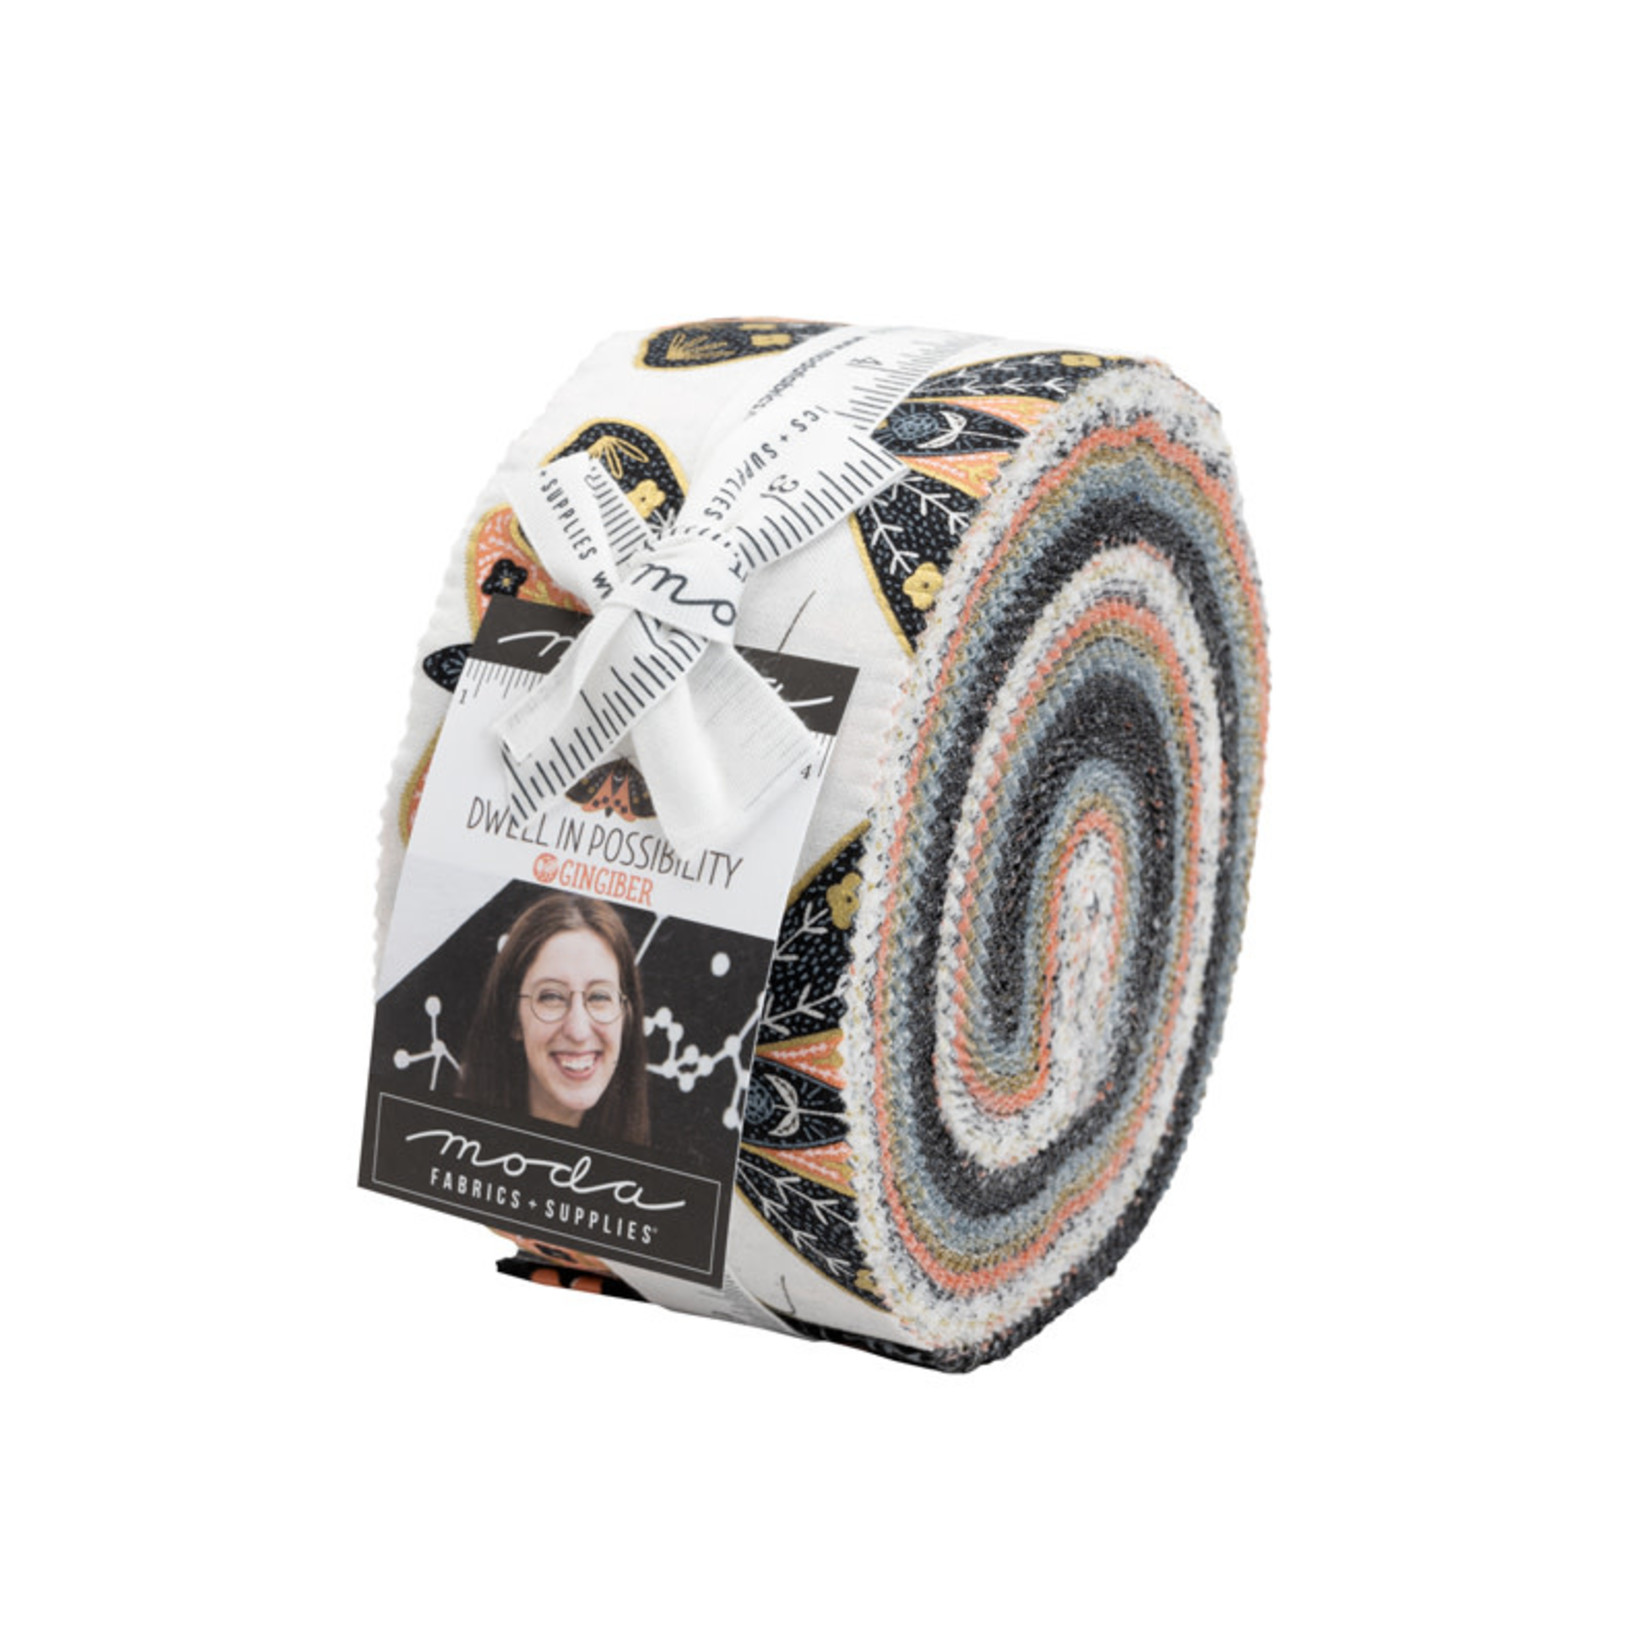 Gingiber Dwell In Possibility Jelly Roll 40pcs